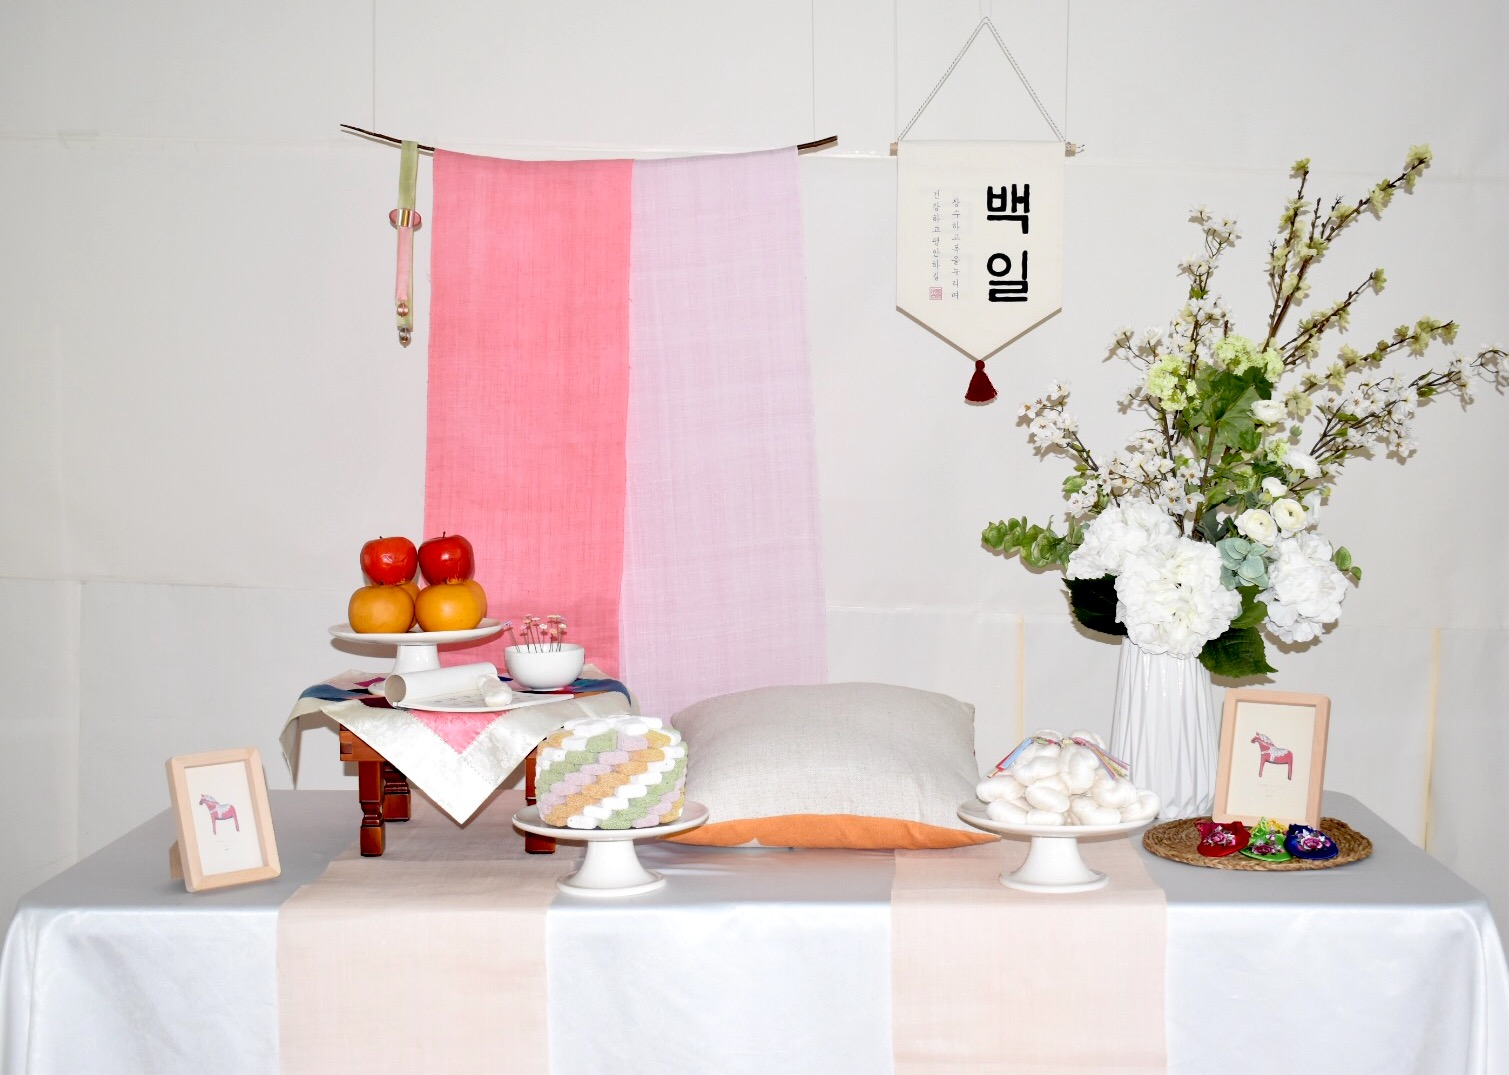 PETIT STYLE TABLE RENTAL: 핑키밍키 백일(Pinky minky) - Included: Two tone hanging runner, round wooden table, traditional tablecloth, traditional runner, small tablecloth, display fruits(option), rice cakes(option), silk flowers and plastic vases, shil ta rae, traditional accessories are randomly picked, 2 picture frame** Mix &Match backdrops and runners *** Pick up- Everything included in the picture except display rice cakes, display fruits, cushion.* Out of state - display rice cakes, apples are not included. (optional).* Shipping fee will apply. Fees might vary depending on location.상품구성: 투톤 행인 러너 2개, 상 1개, 한복 원단 러너,상보, 모형 과일(옵션), 모형 떡(옵션), 꽃과 아크릴 화병, 상화, 실타래, 전통 장식품들 램덤, 액자 2개** 러너 Mix & Match 하실수 있습니다.*** Pick up- 사진에 모든 물품 포함되지만 모형떡, 과일, 방석은 포함되지 않습니다. 전통 소품들은 랜덤입니다.* 타주시 - 깨지지 않는 소품들로 나갑니다. 모형 과일, 떡은 옵션입니다. 전통 장식품들은 랜덤입니다.*배송시 배송비는 추가이며, 지역따라 배송비가 다를수 있습니다.